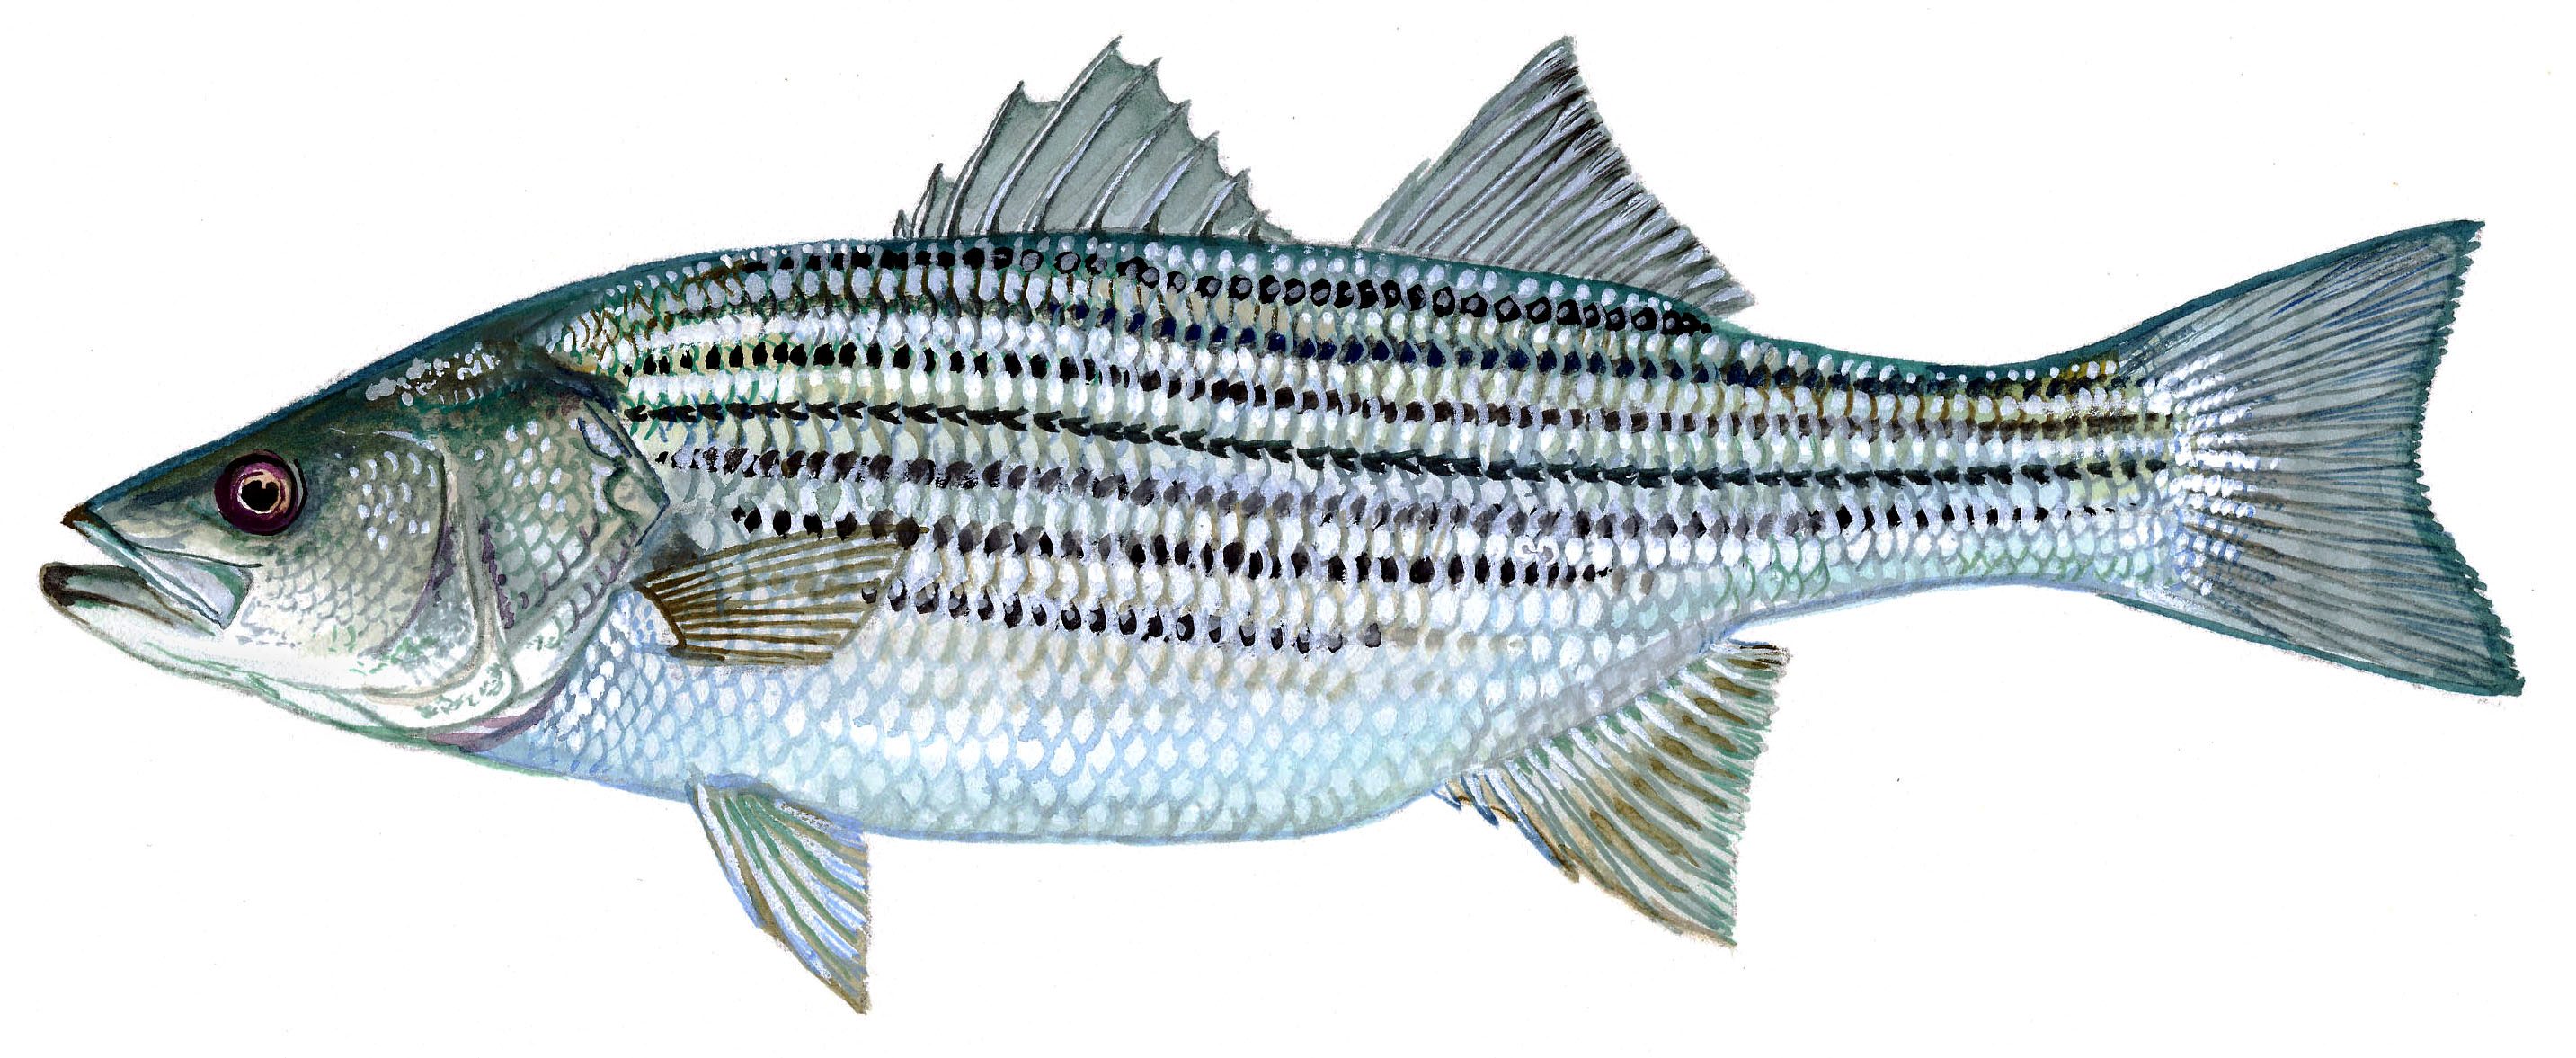 Bass clipart striped bass. Changes to commercial fishing